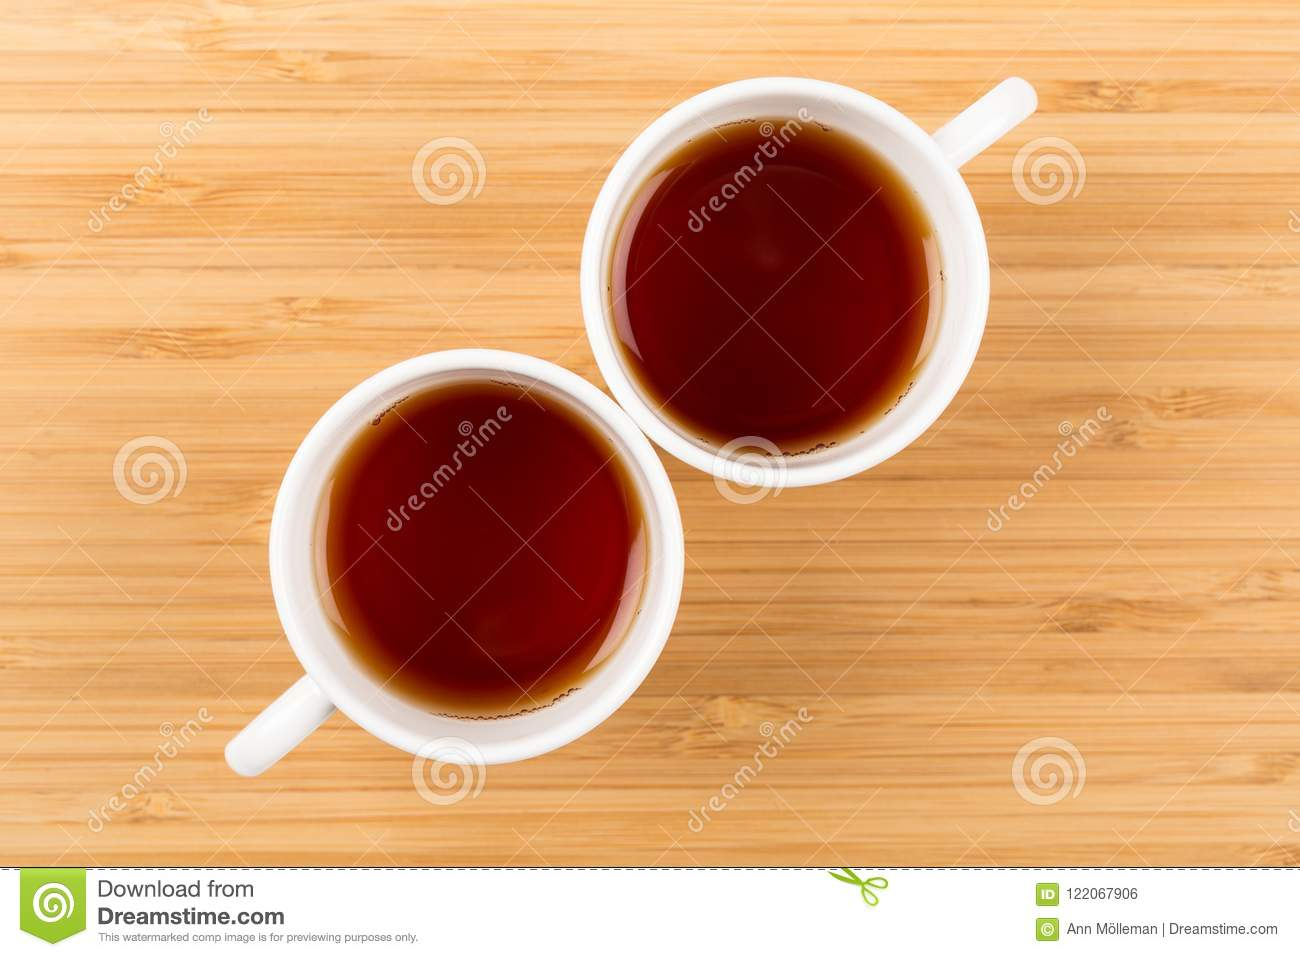 Good Morning, Two White Cups of tea isolated on a wooden background shot from above, breakfast